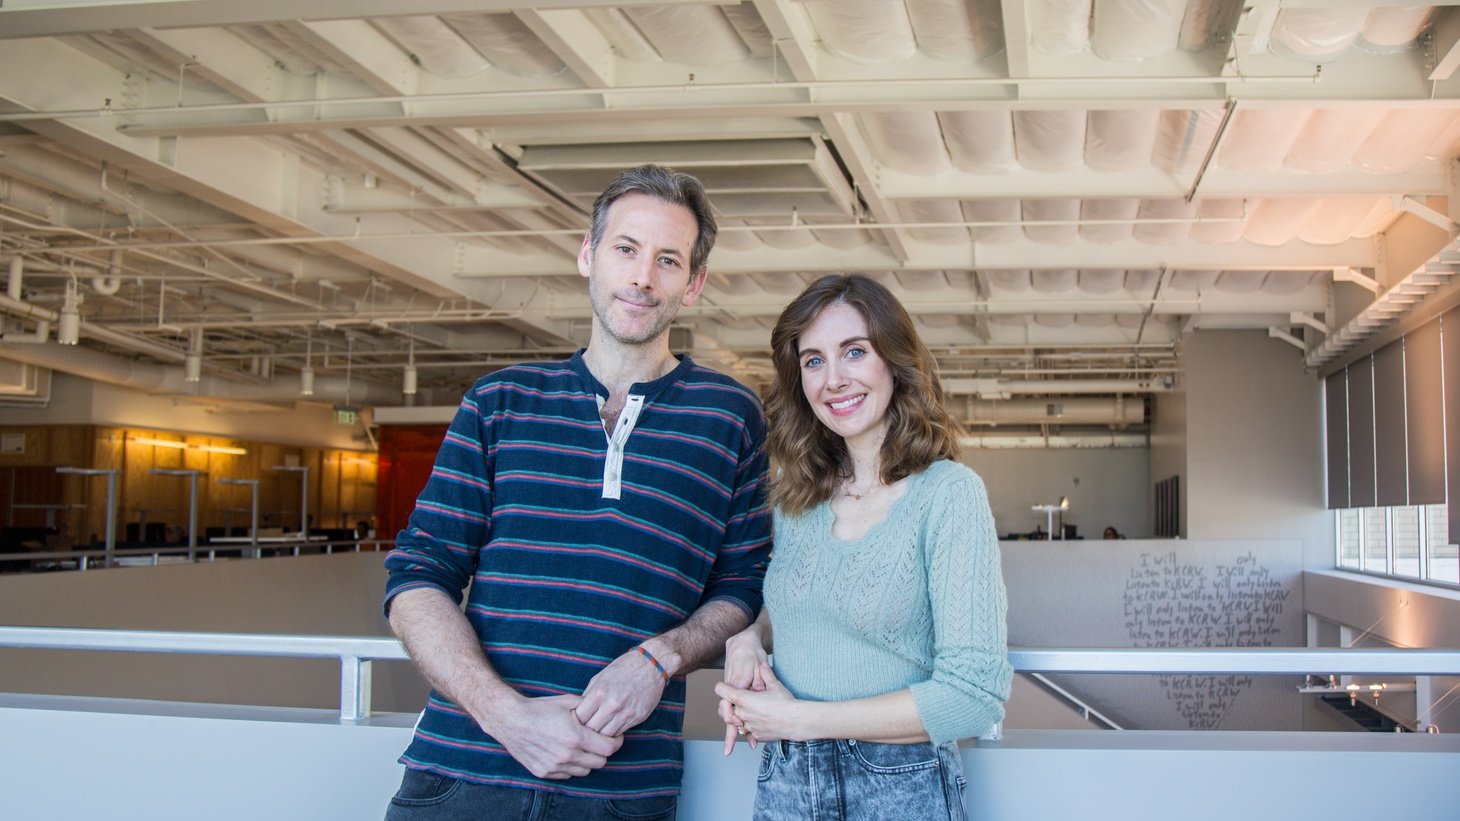 Jeff Baena and Alison Brie at KCRW.